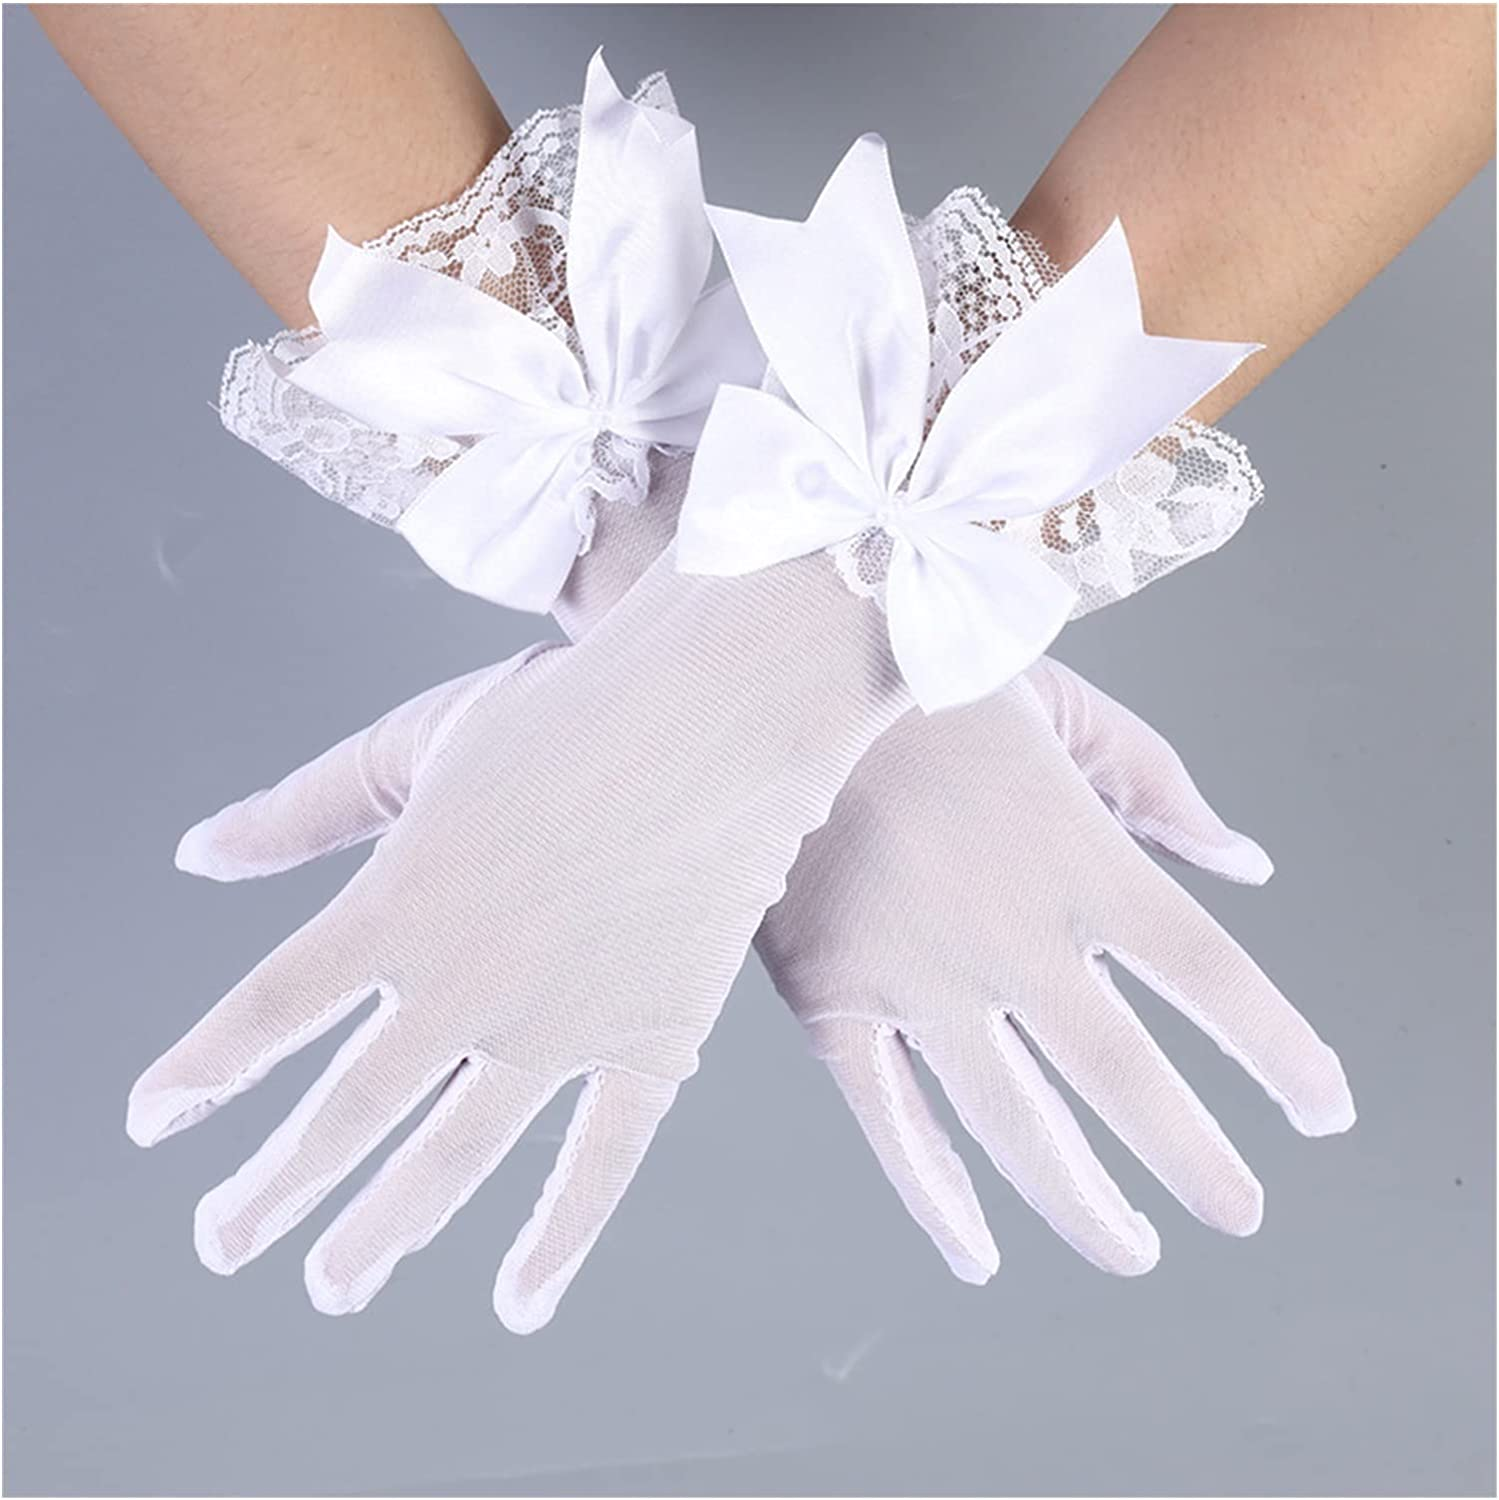 LANREN Women Lace Mesh Gloves Large Bow Knot Marriage Glove Party Cosplay Accessories (Color : 7)